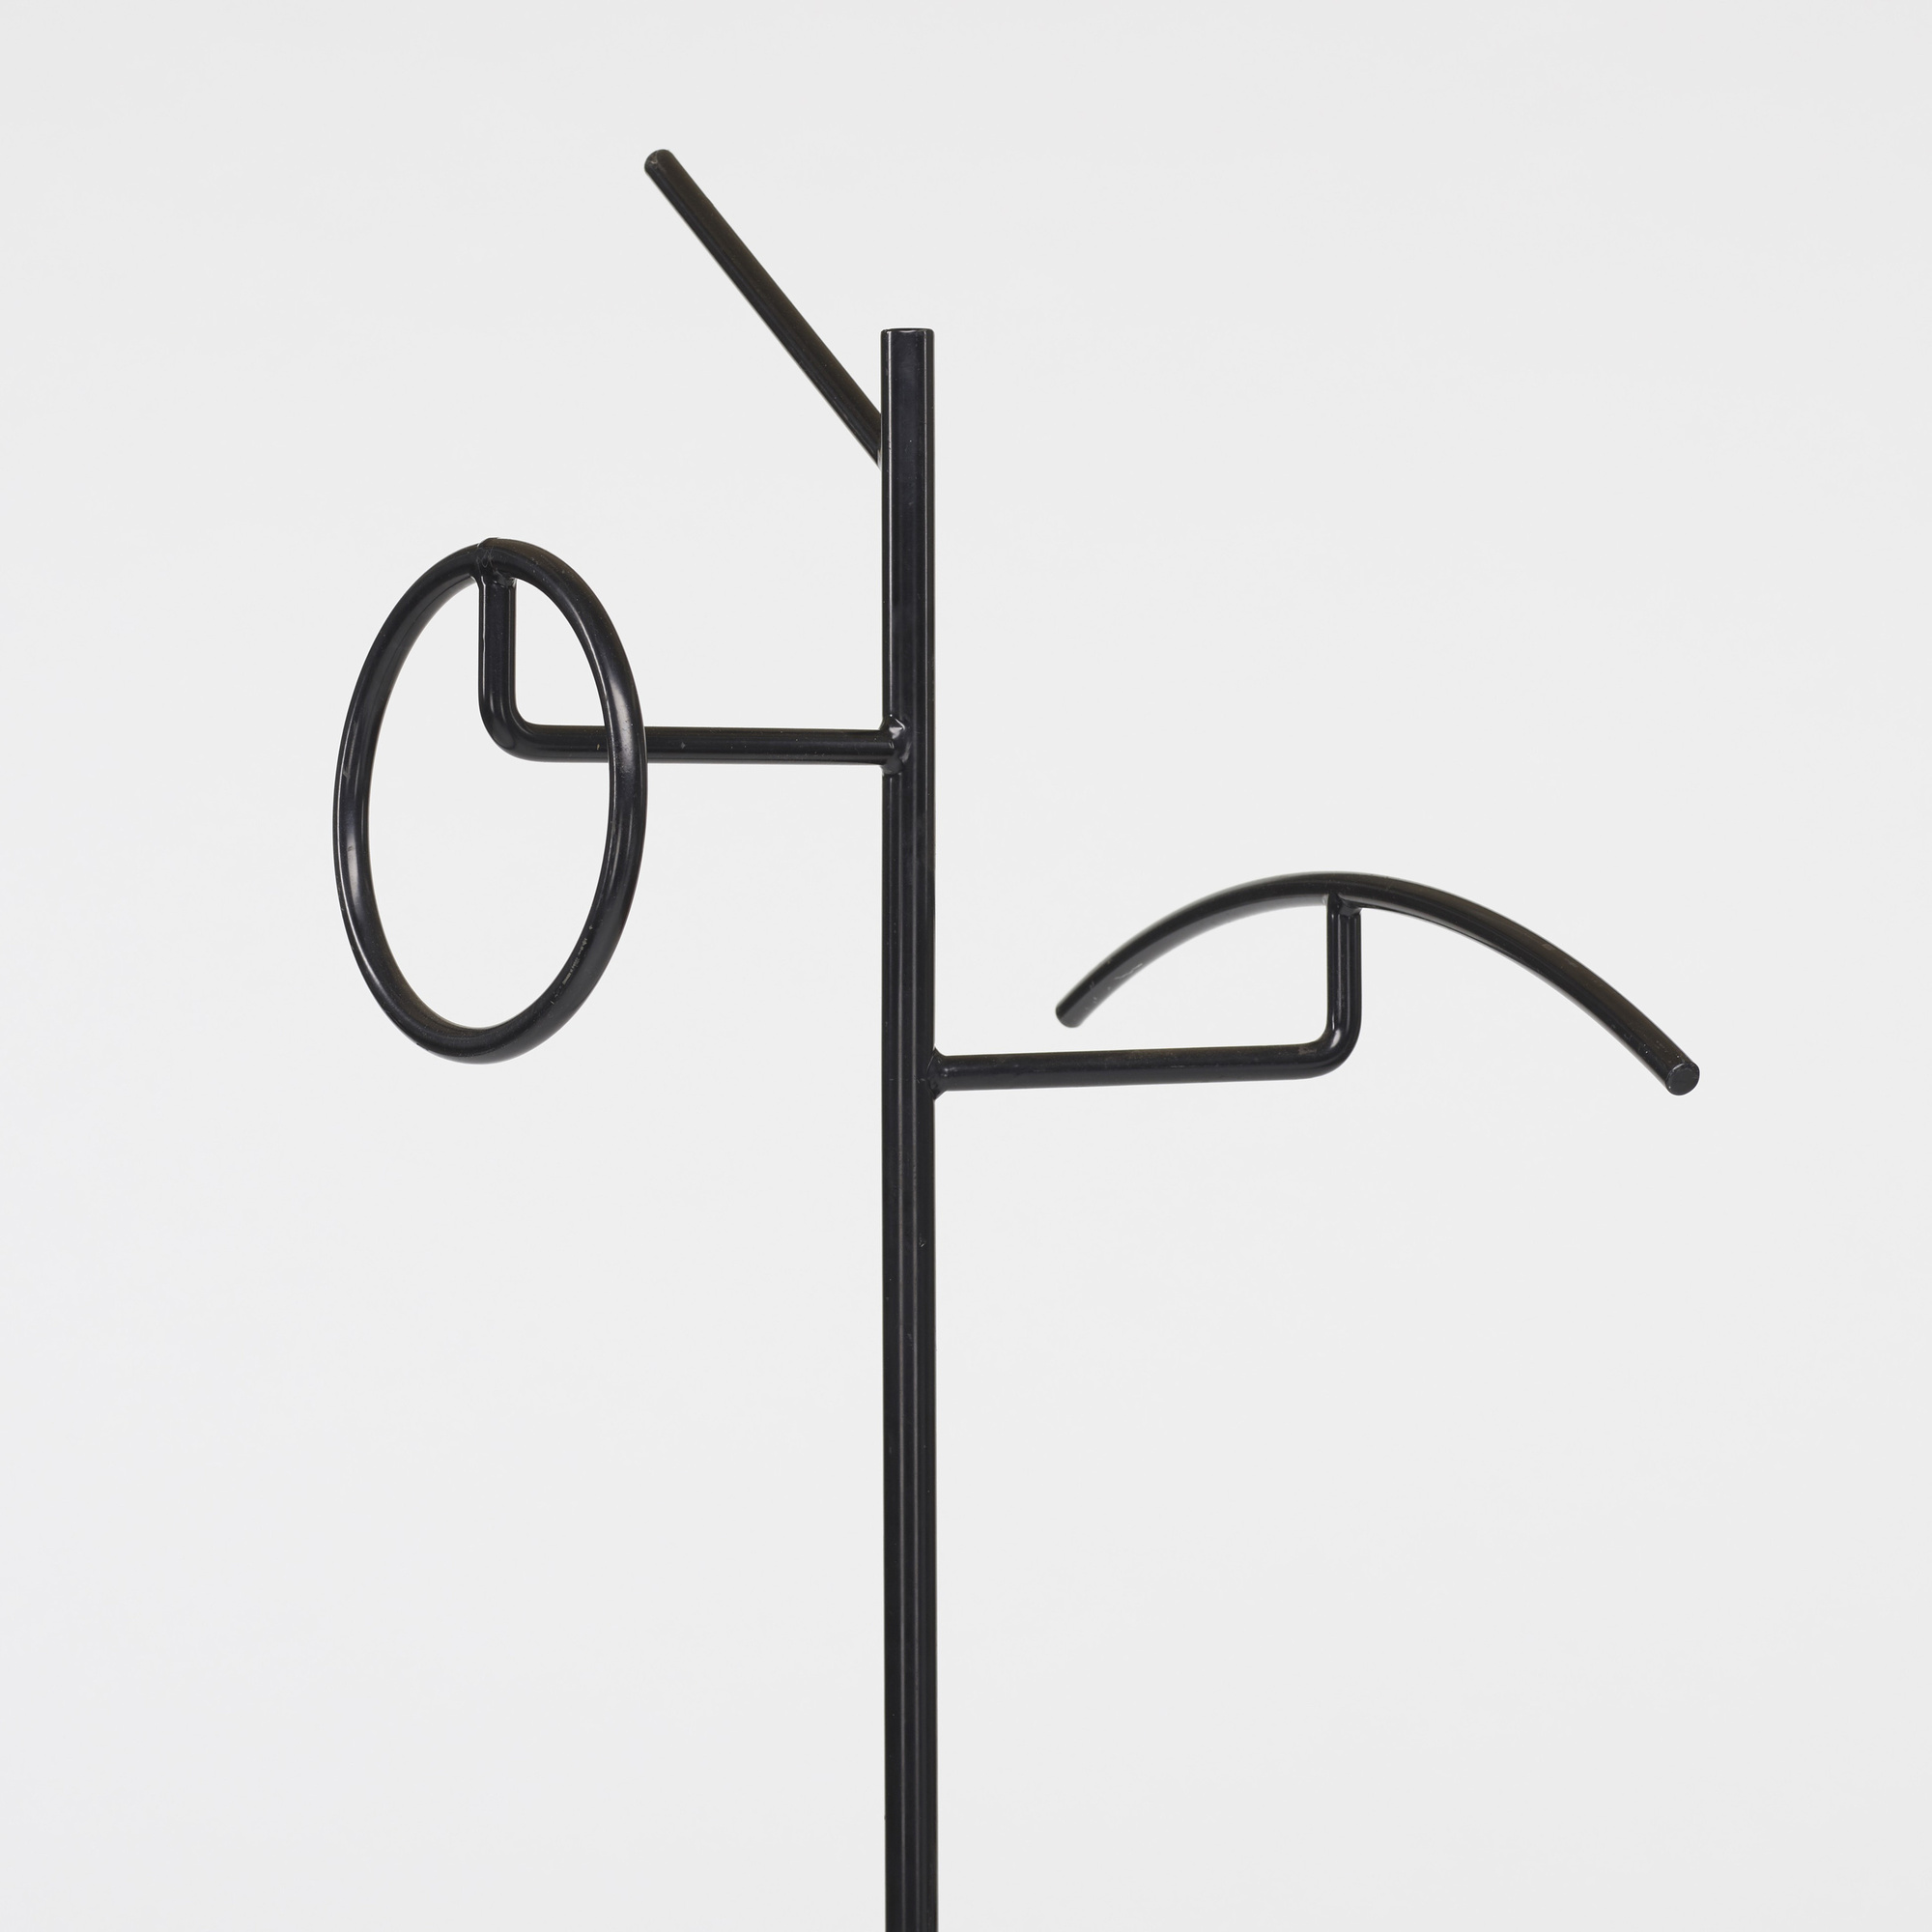 208: Muriel Coleman / coatrack (3 of 3)